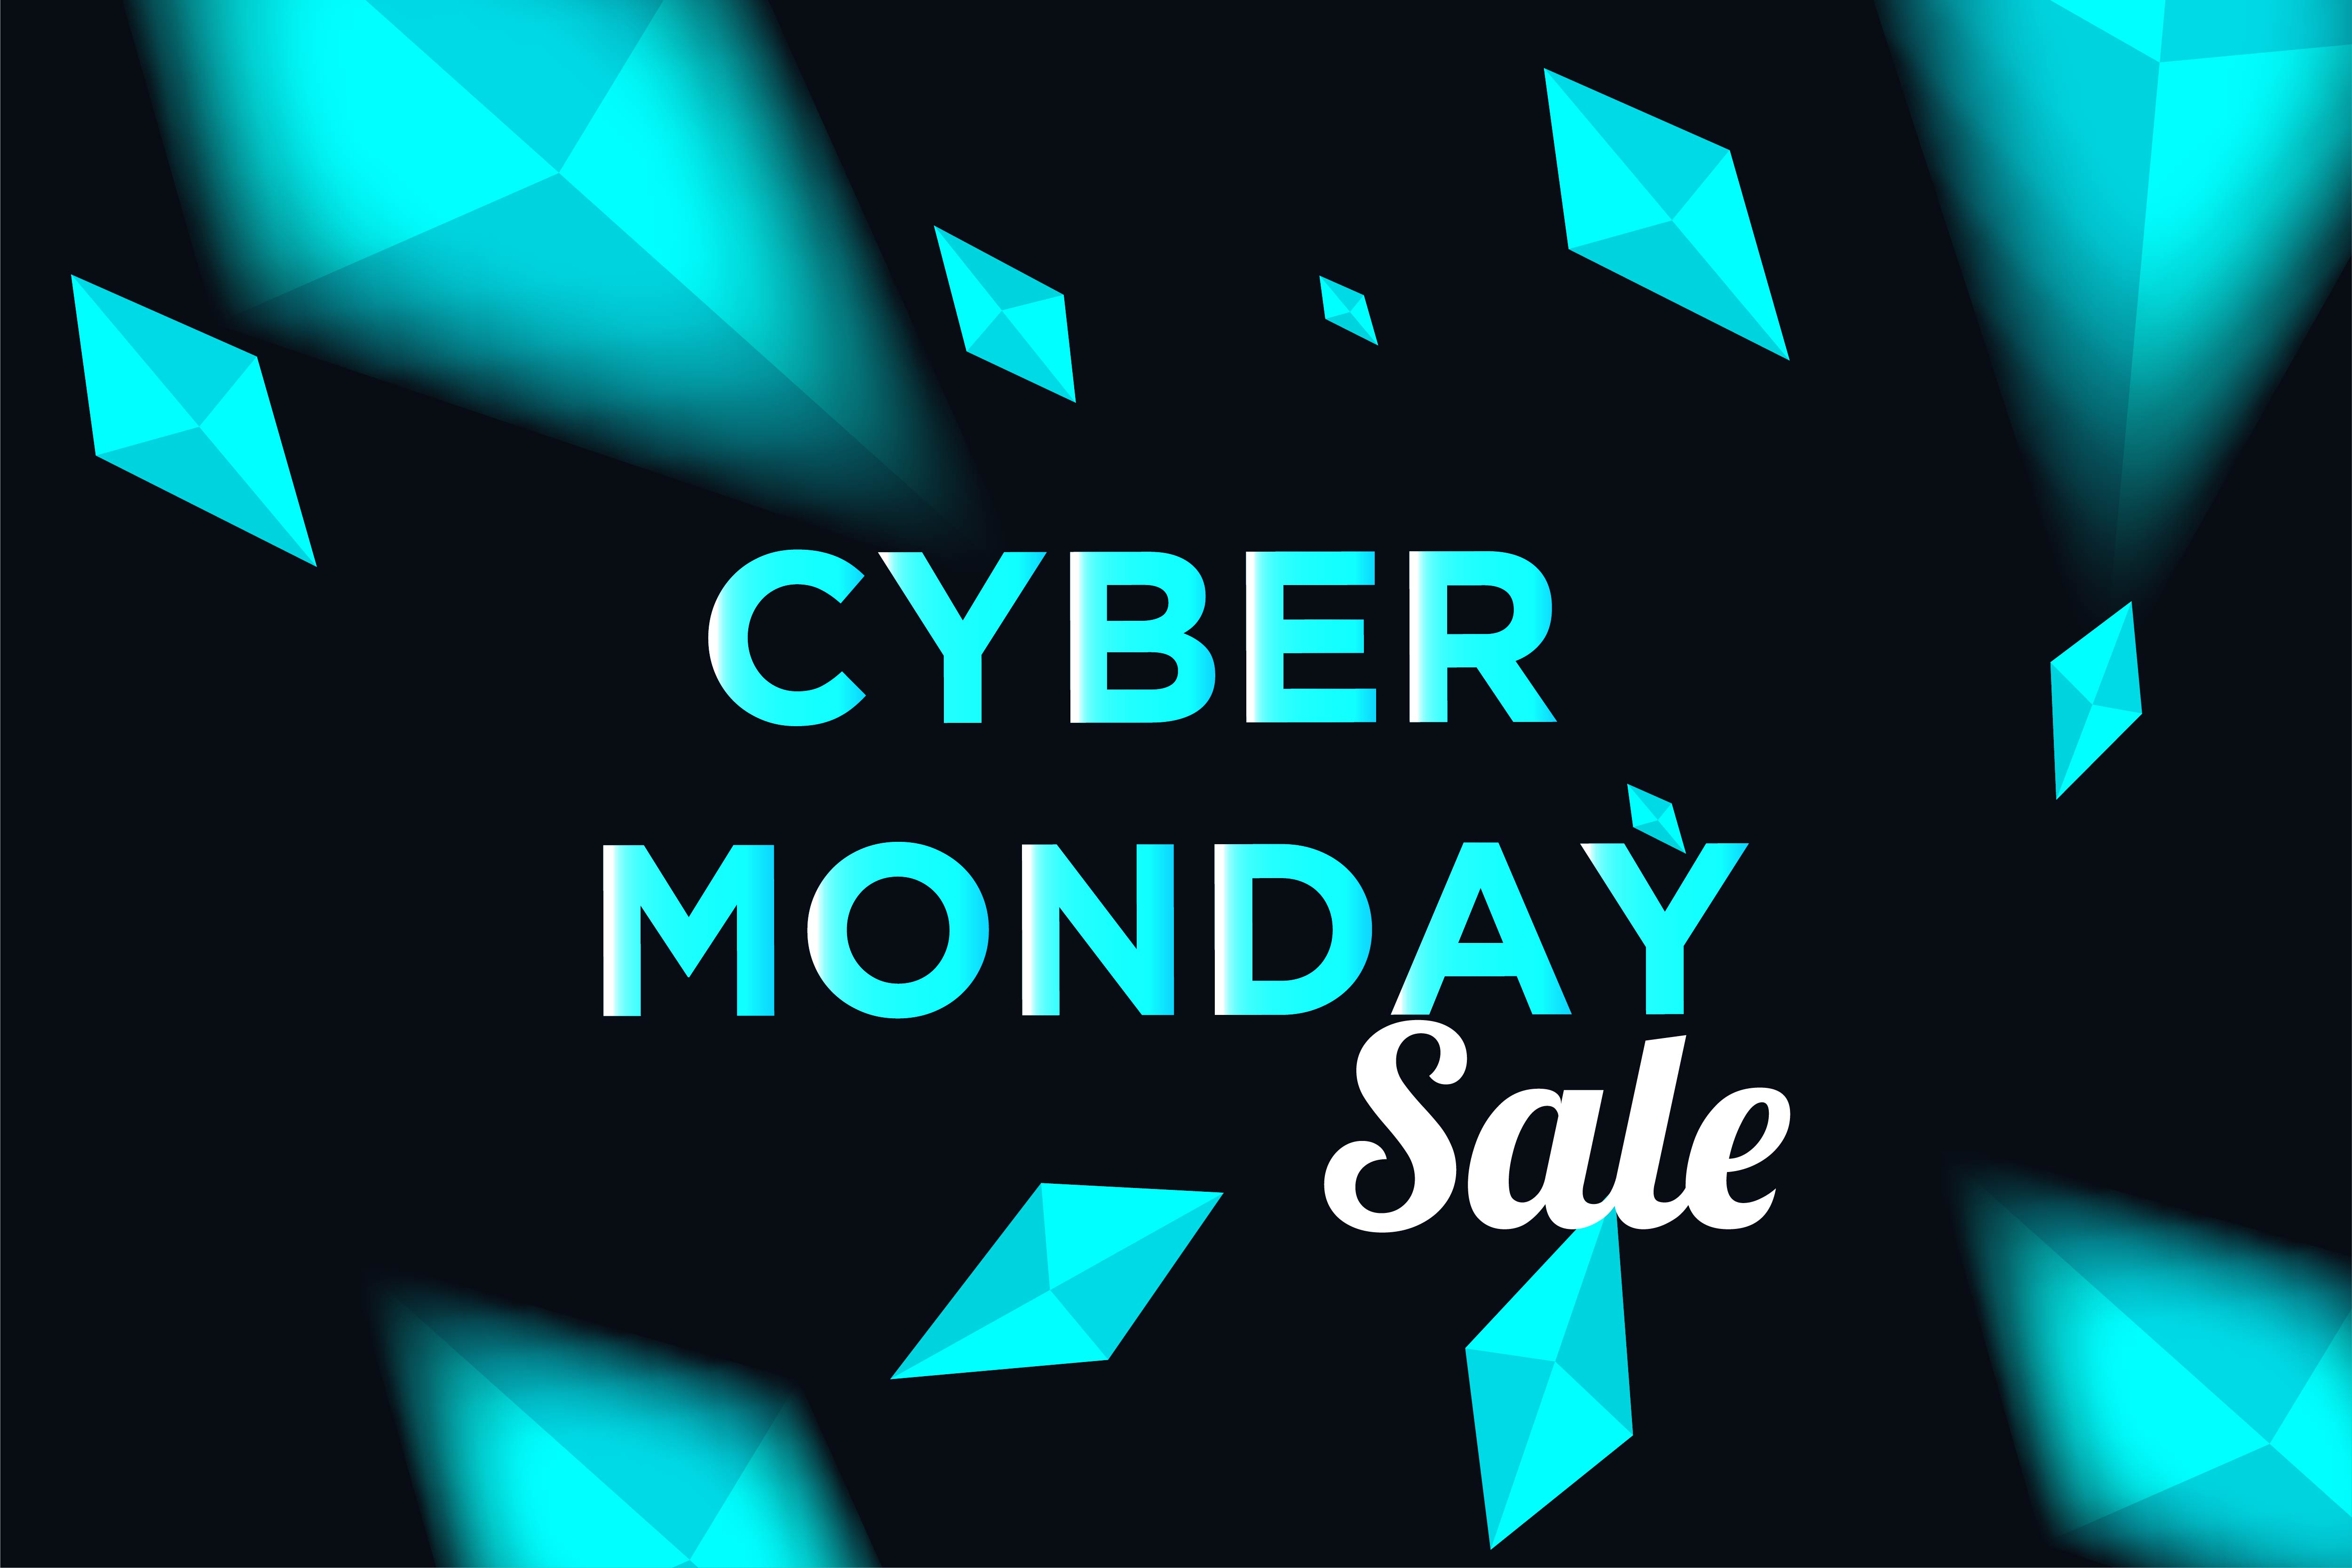 Cyber Monday Background For Good Deal Promotion Graphic By Yahyaanasatokillah Creative Fabrica